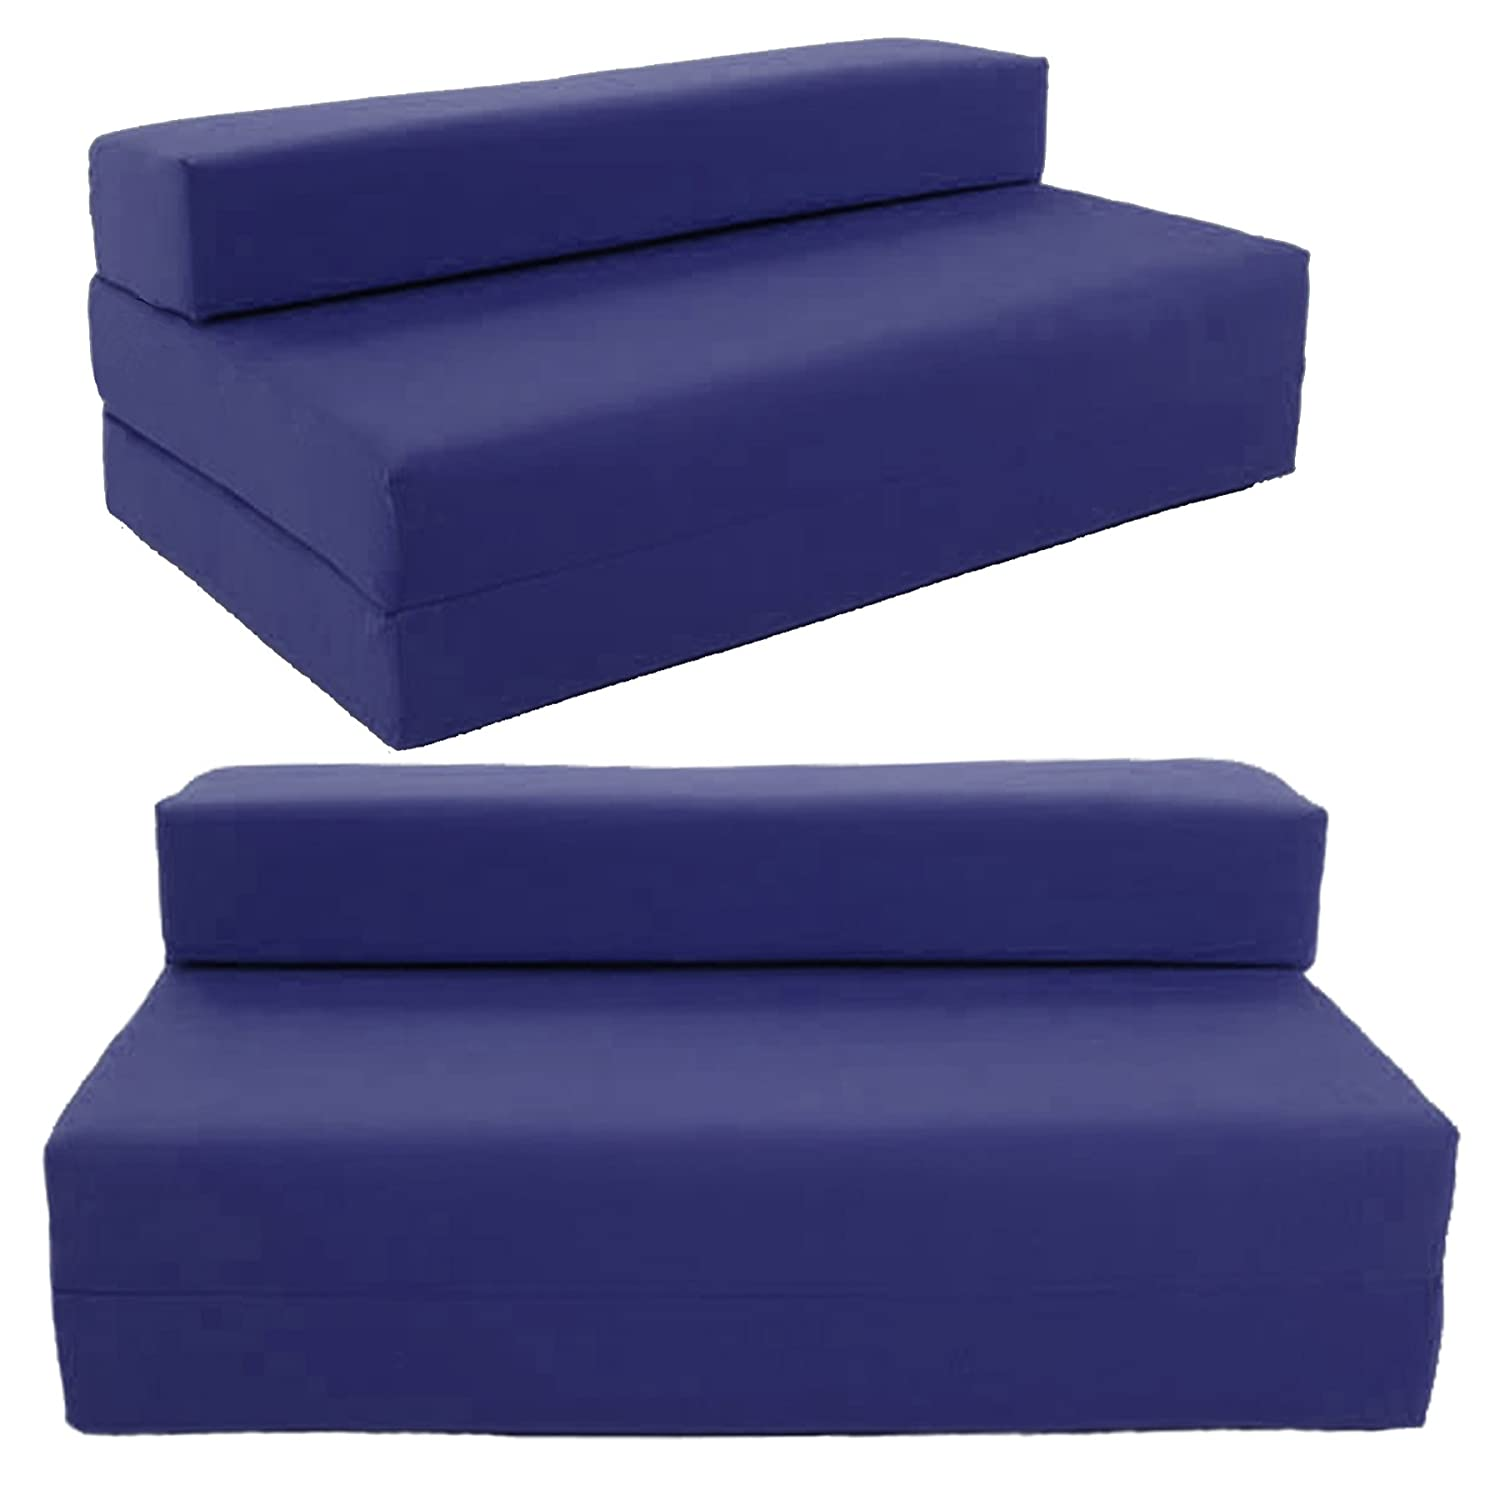 Cheap sofa beds amazon faux leather sleeper sofa for for Cheap divan bed sets